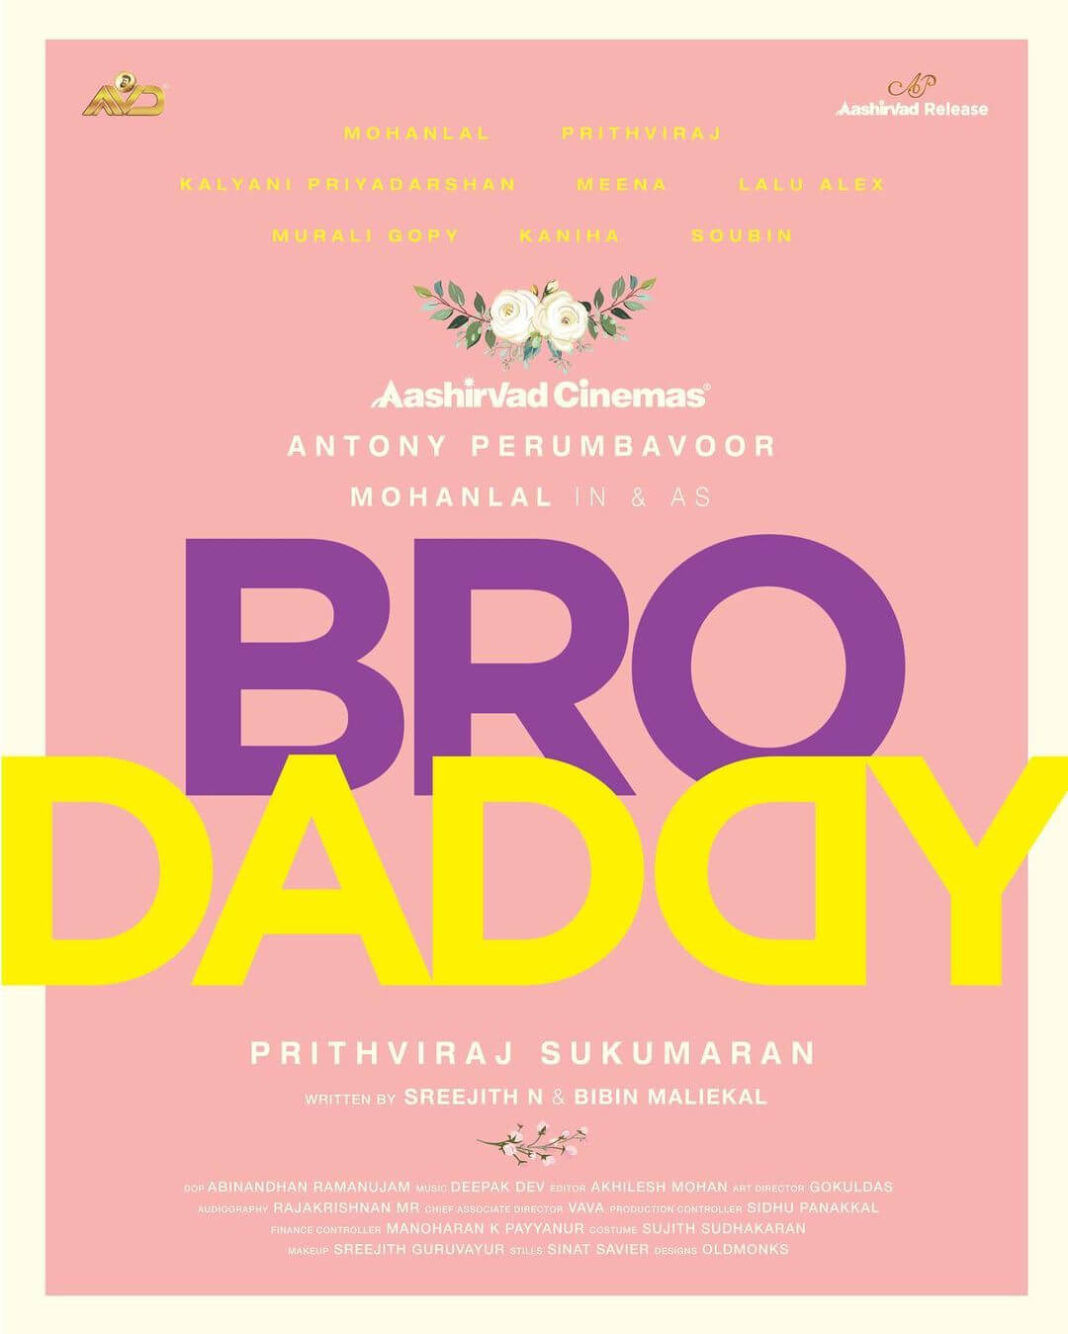 Bro Daddy Movie (2022) Cast, Roles, Crew, Release Date, Story, Trailer, Posters